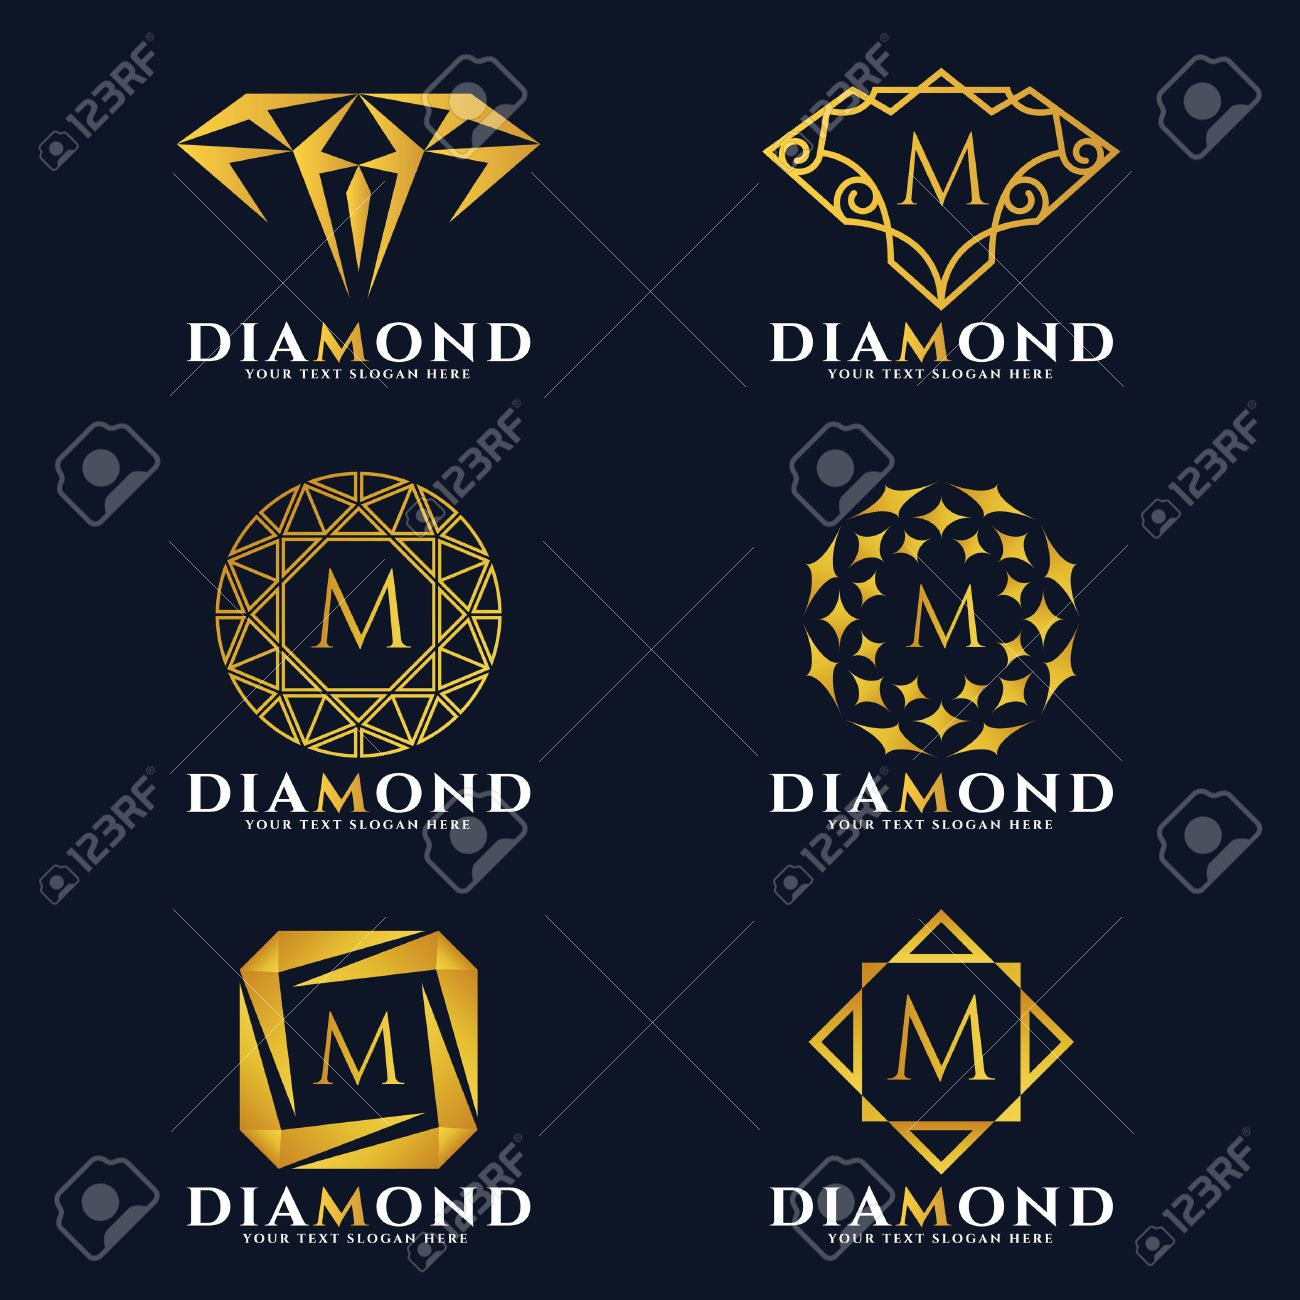 images logo creative illustration diamond stock of site blue